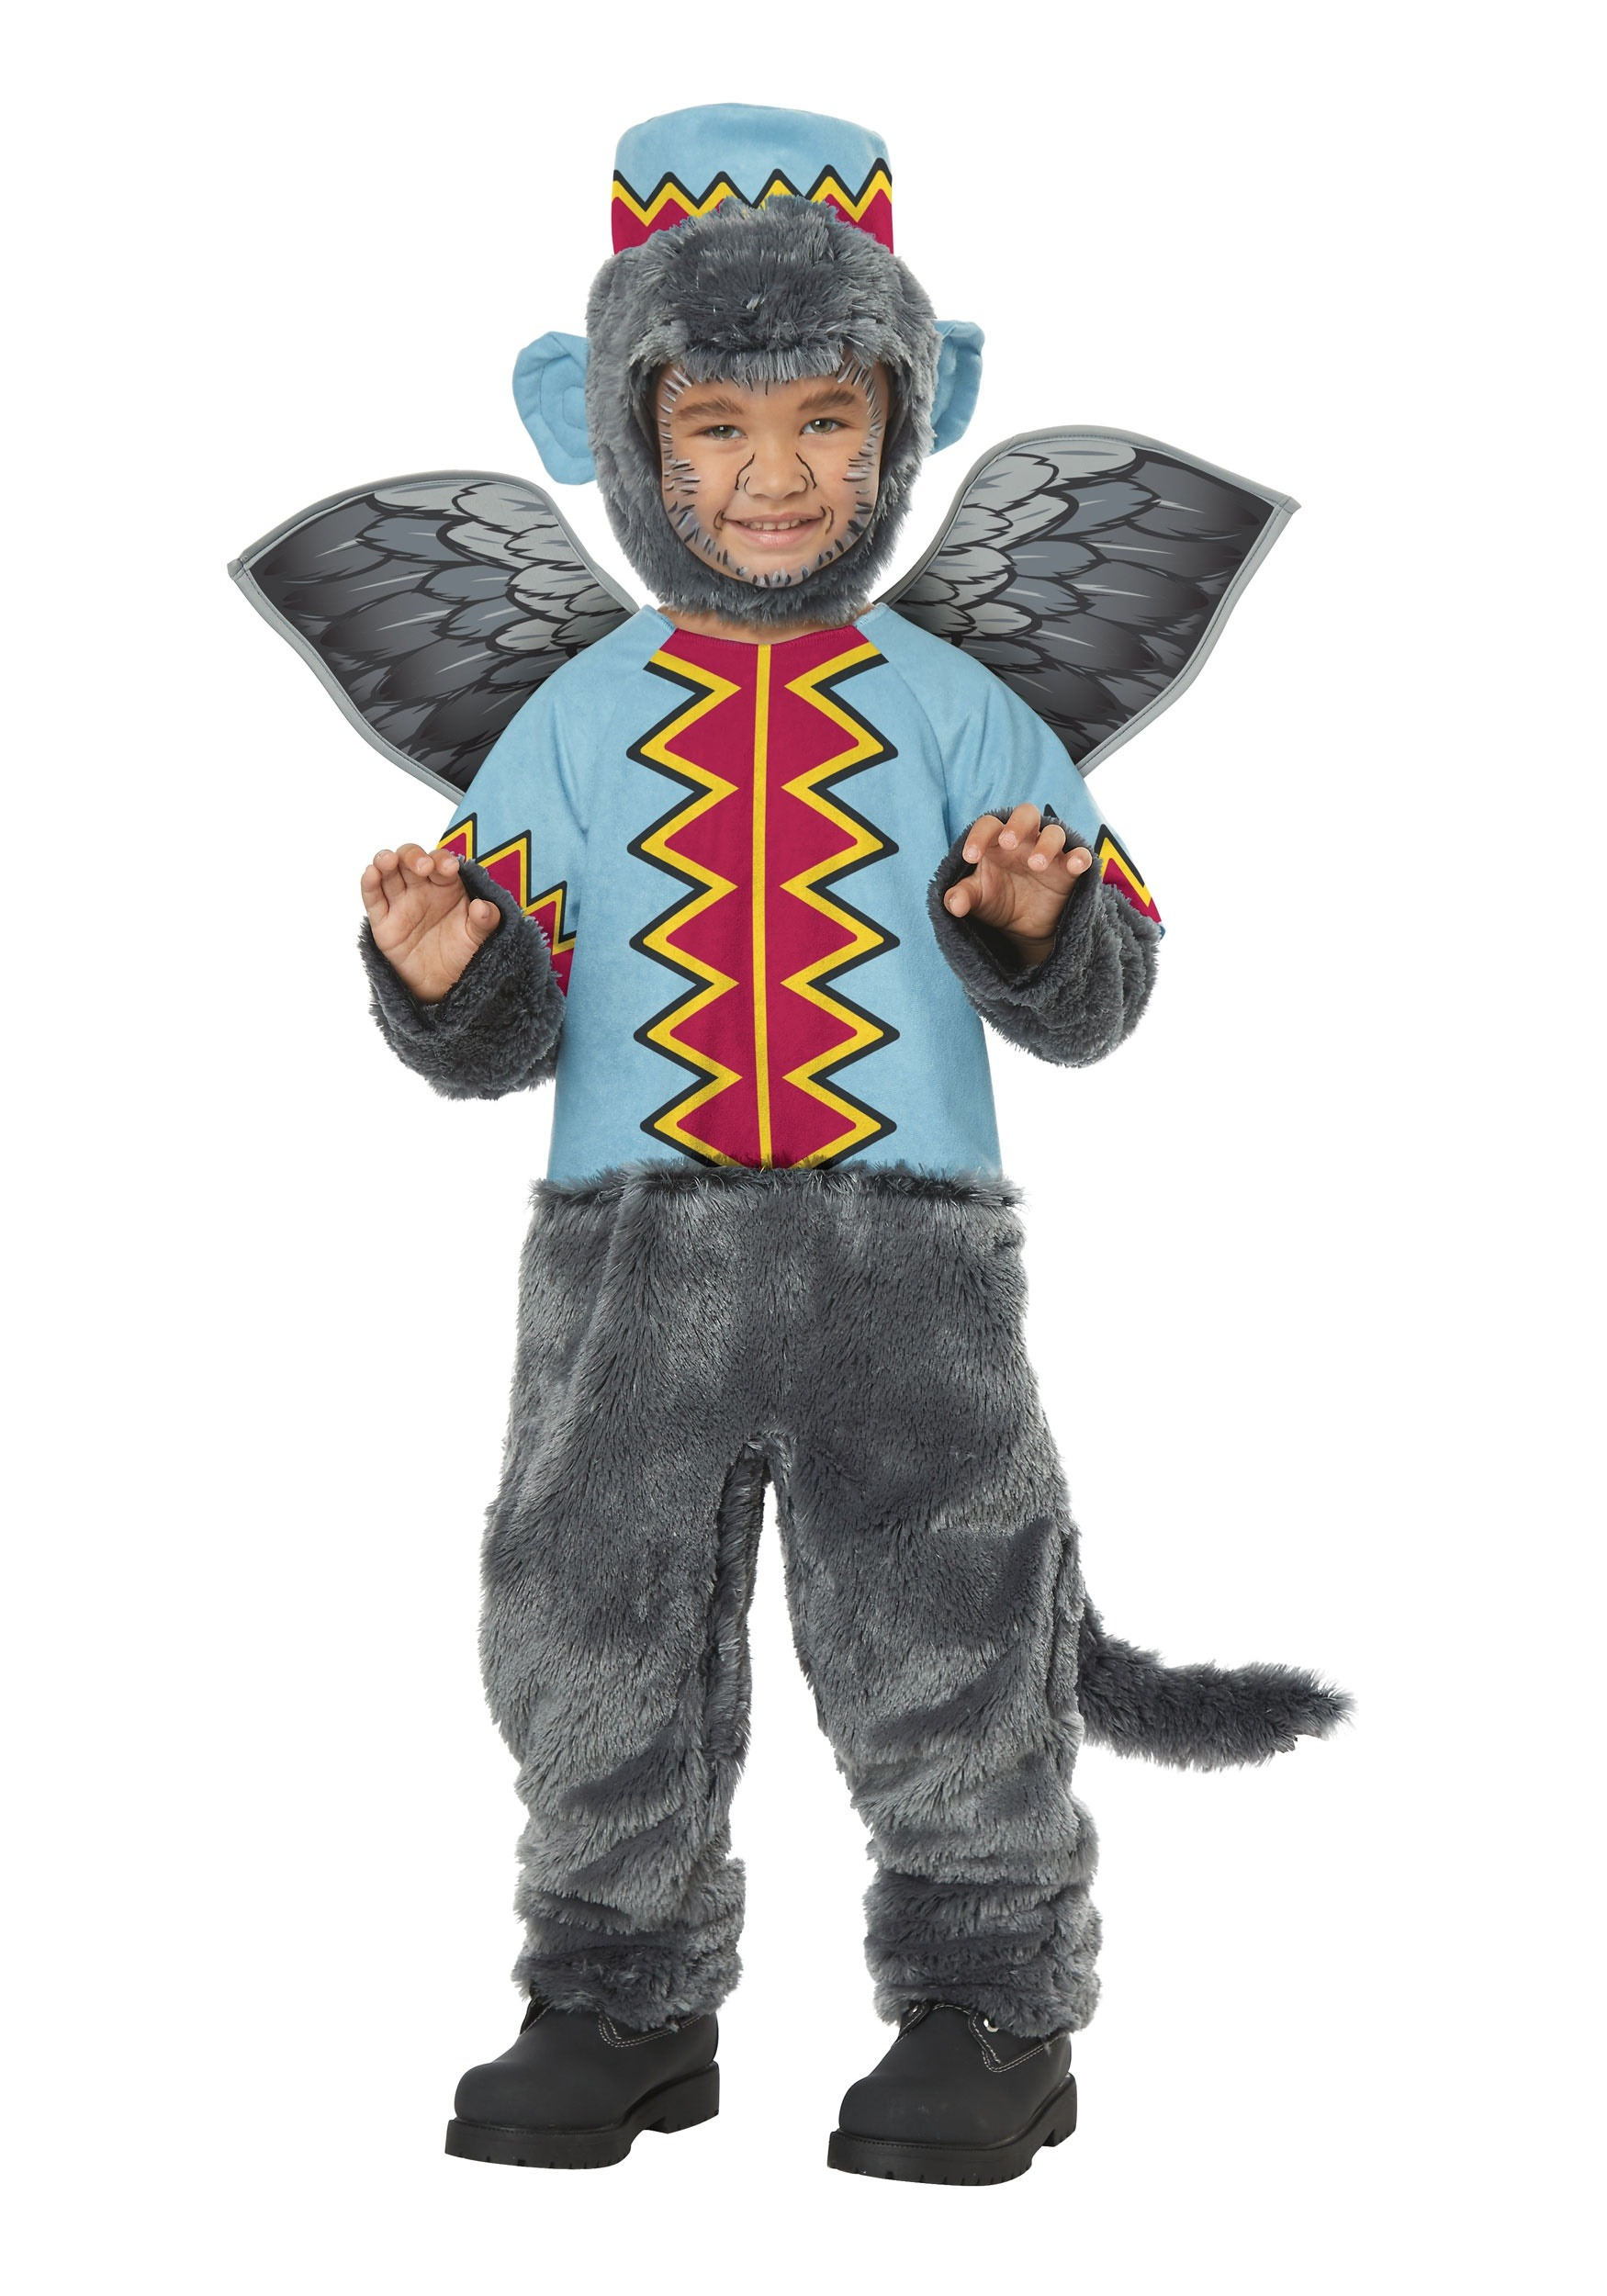 Wizard of Oz Flying Monkey Costumes - HalloweenCostumes.com